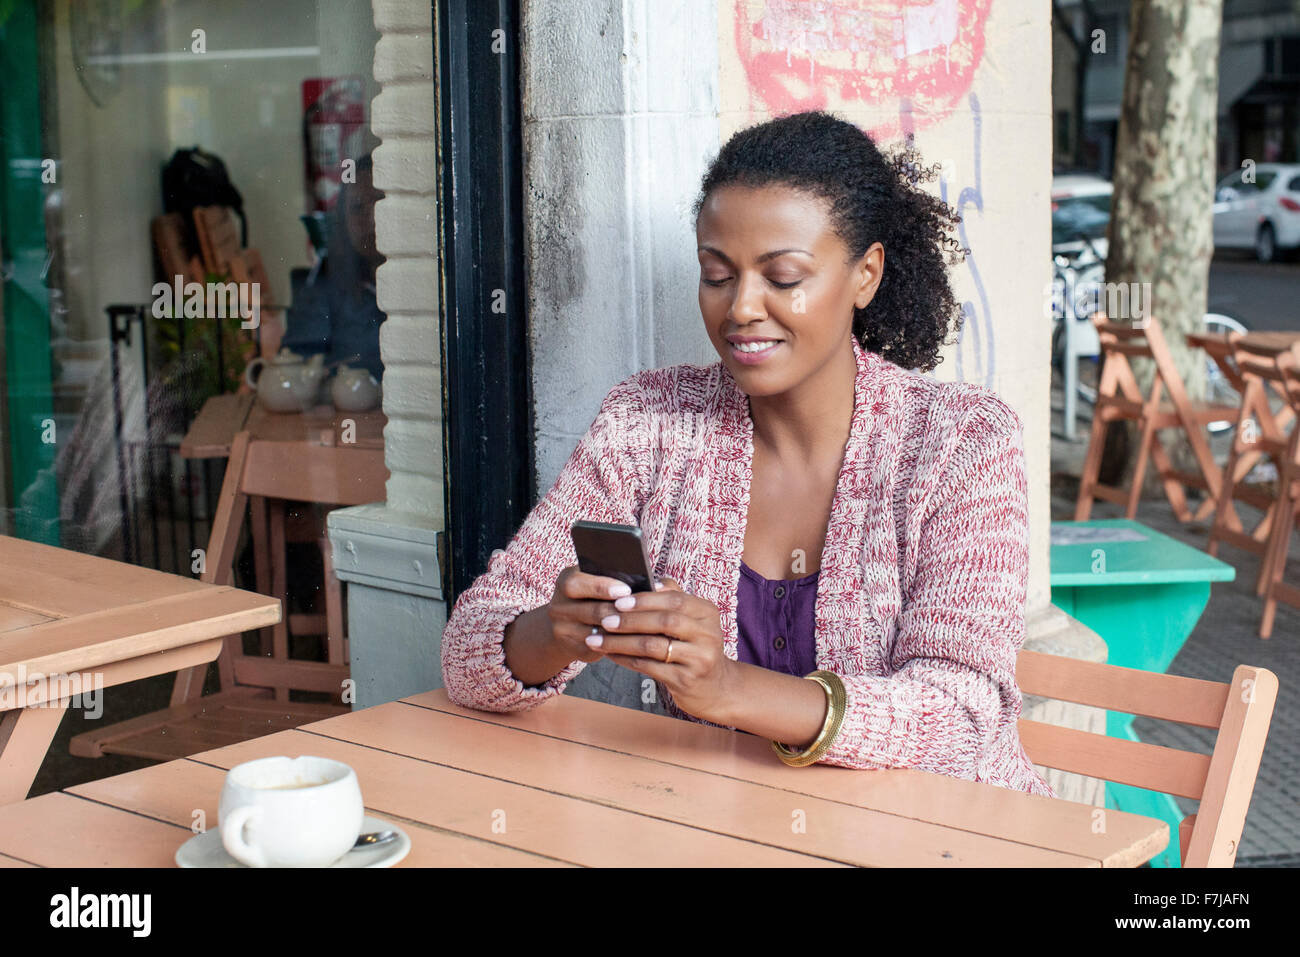 Woman using cell phone at sidewalk cafe - Stock Image